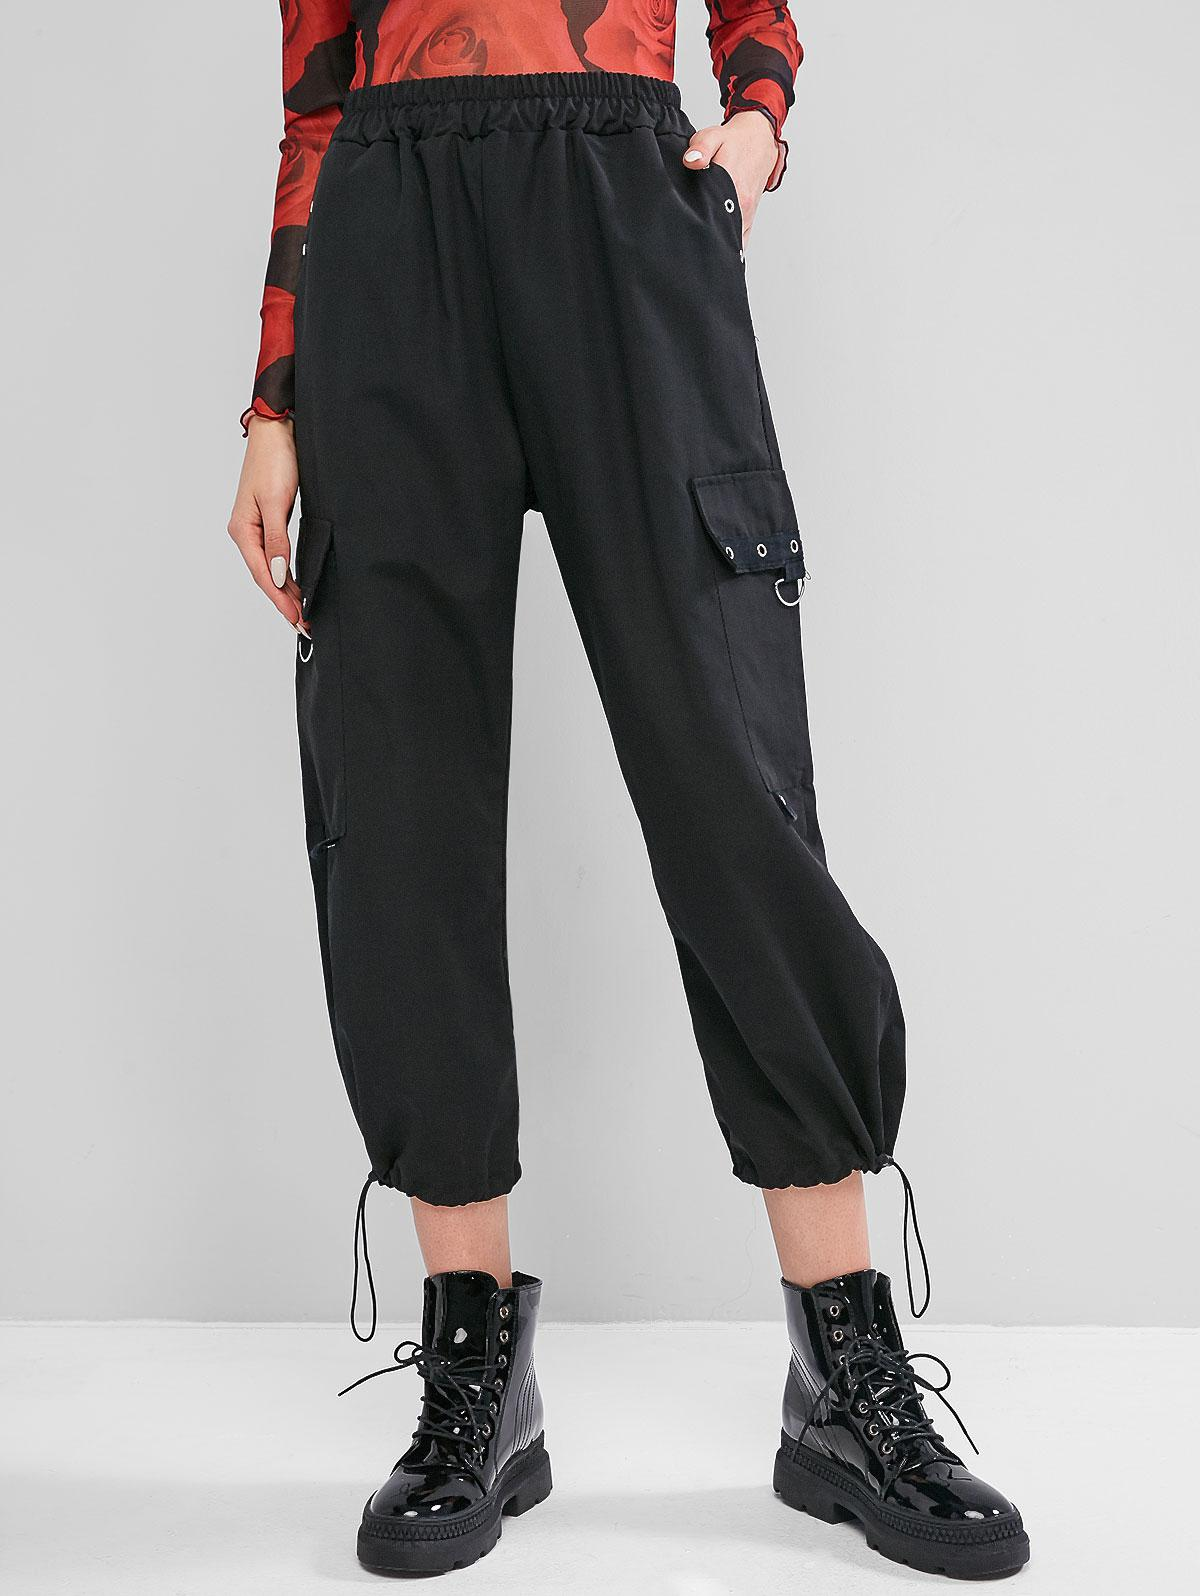 Grommet High Waisted Cargo Jogger Pants фото